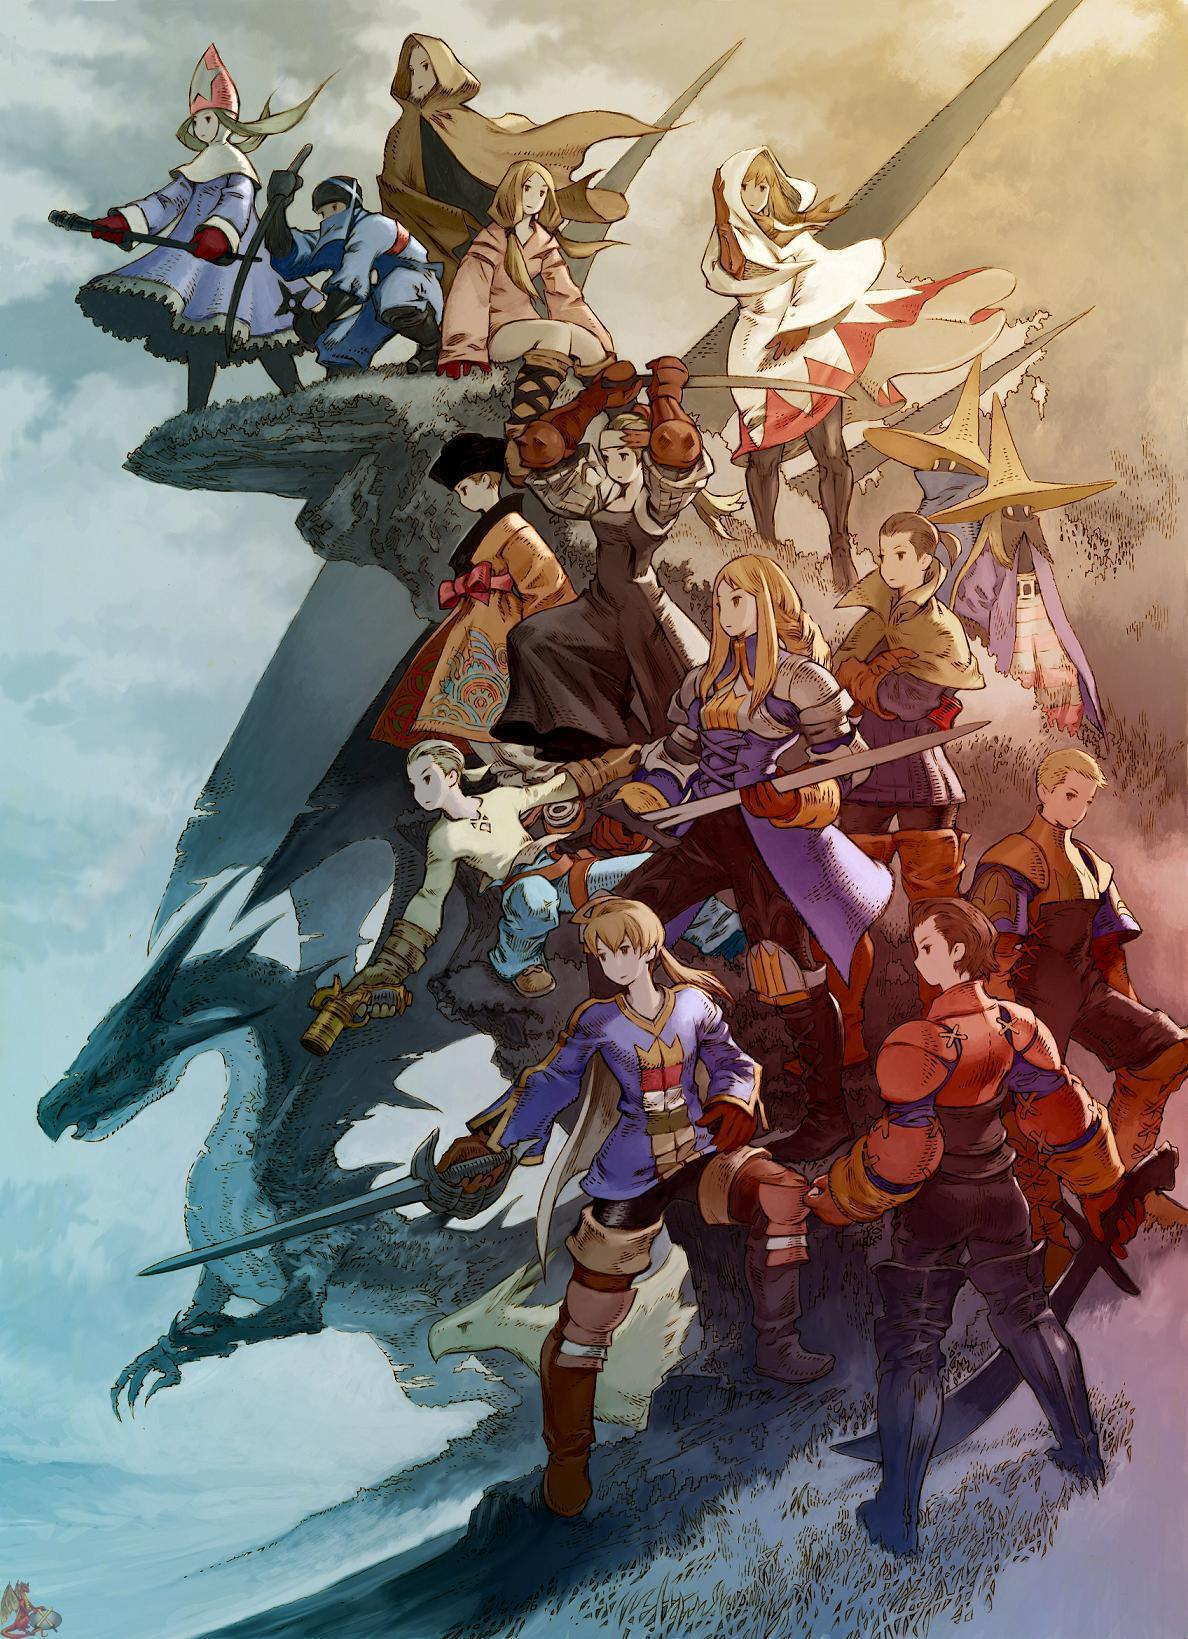 Final Fantasy Tactics Images HD Wallpaper And Background Photos